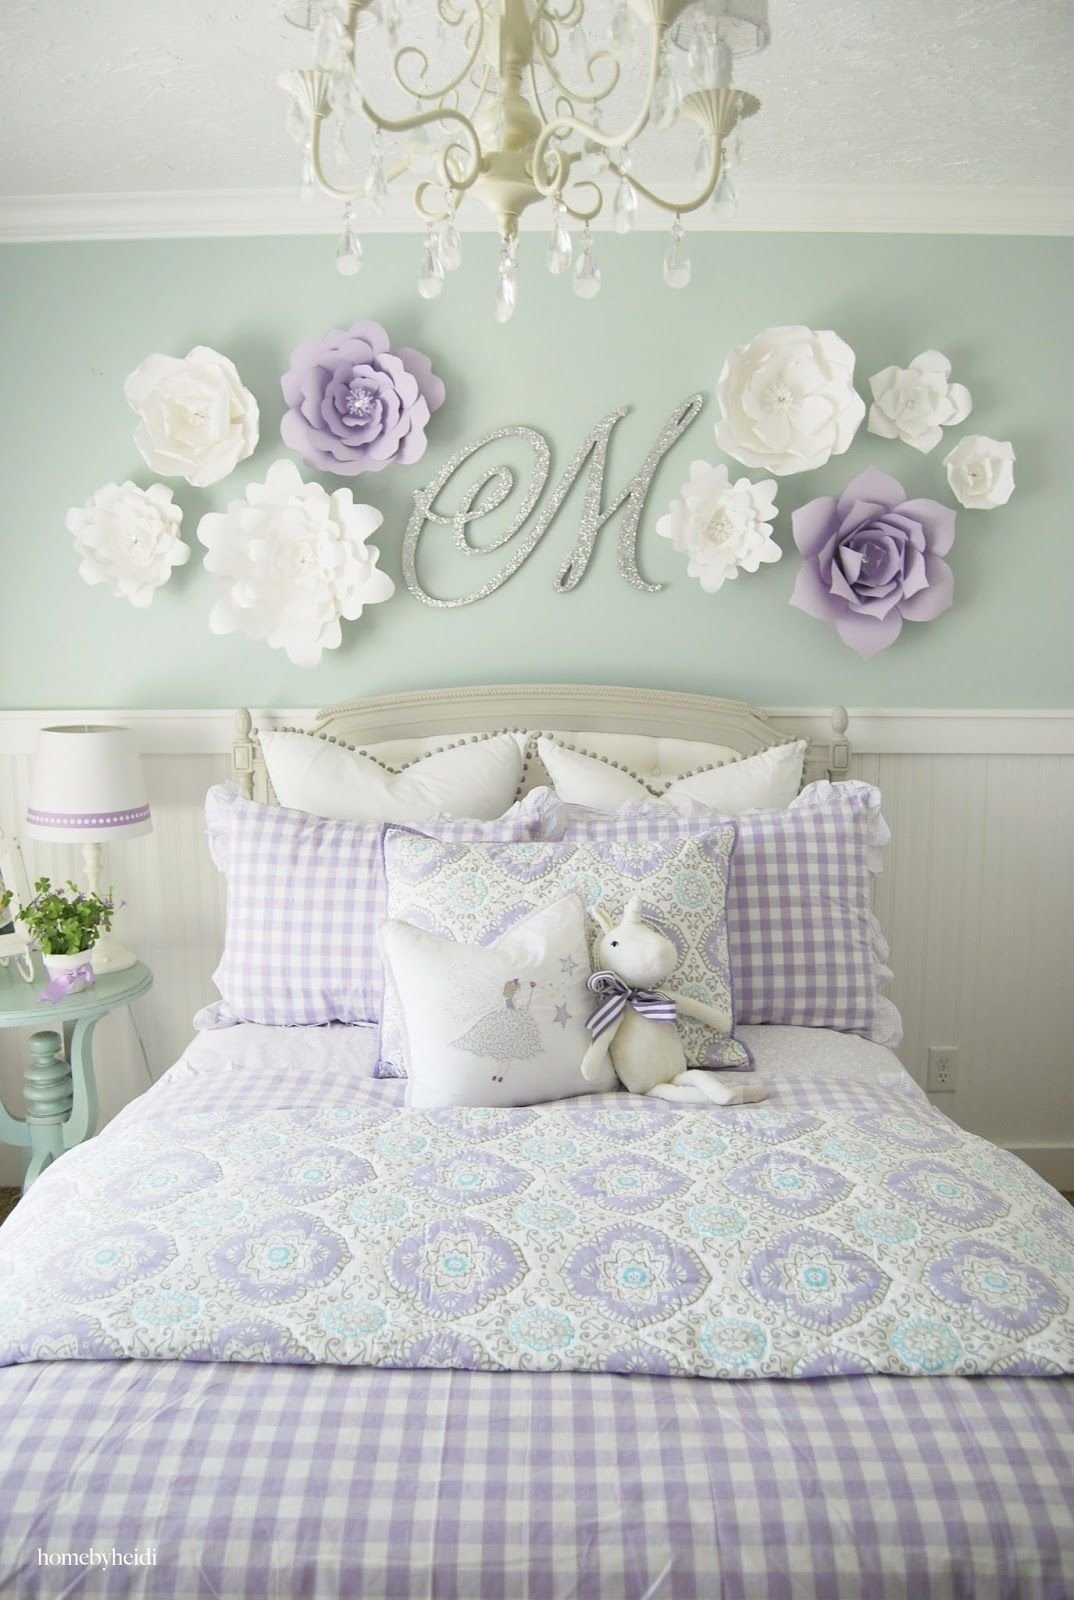 10 Fashionable Ideas For Little Girls Bedroom 100 bedroom designs that will inspire you nursery change and 3 2021